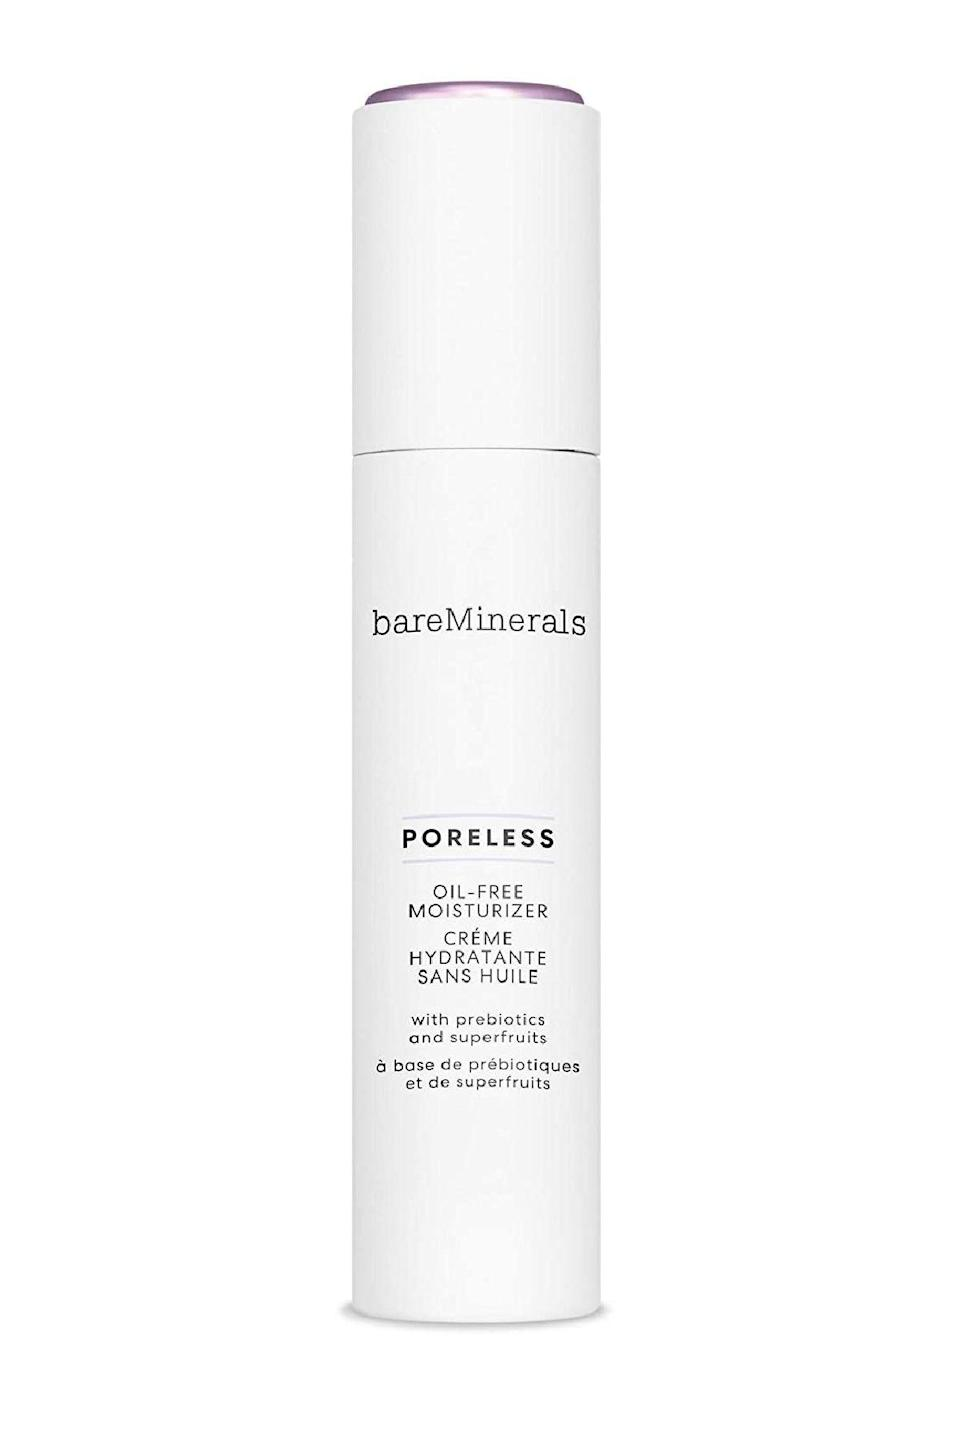 """<p><strong>bareMinerals</strong></p><p>ulta.com</p><p><strong>$35.00</strong></p><p><a href=""""https://go.redirectingat.com?id=74968X1596630&url=https%3A%2F%2Fwww.ulta.com%2Fporeless-oil-free-moisturizer%3FproductId%3Dpimprod2009780&sref=https%3A%2F%2Fwww.marieclaire.com%2Fbeauty%2Fg34399769%2Fbest-oil-free-moisturizers%2F"""" rel=""""nofollow noopener"""" target=""""_blank"""" data-ylk=""""slk:SHOP IT"""" class=""""link rapid-noclick-resp"""">SHOP IT</a></p><p>When you struggle with acne there's usually a range of causes, many of which are addressed with the prebiotics and fruit exfoliants in this lightweight and pore-refining formulation. </p>"""